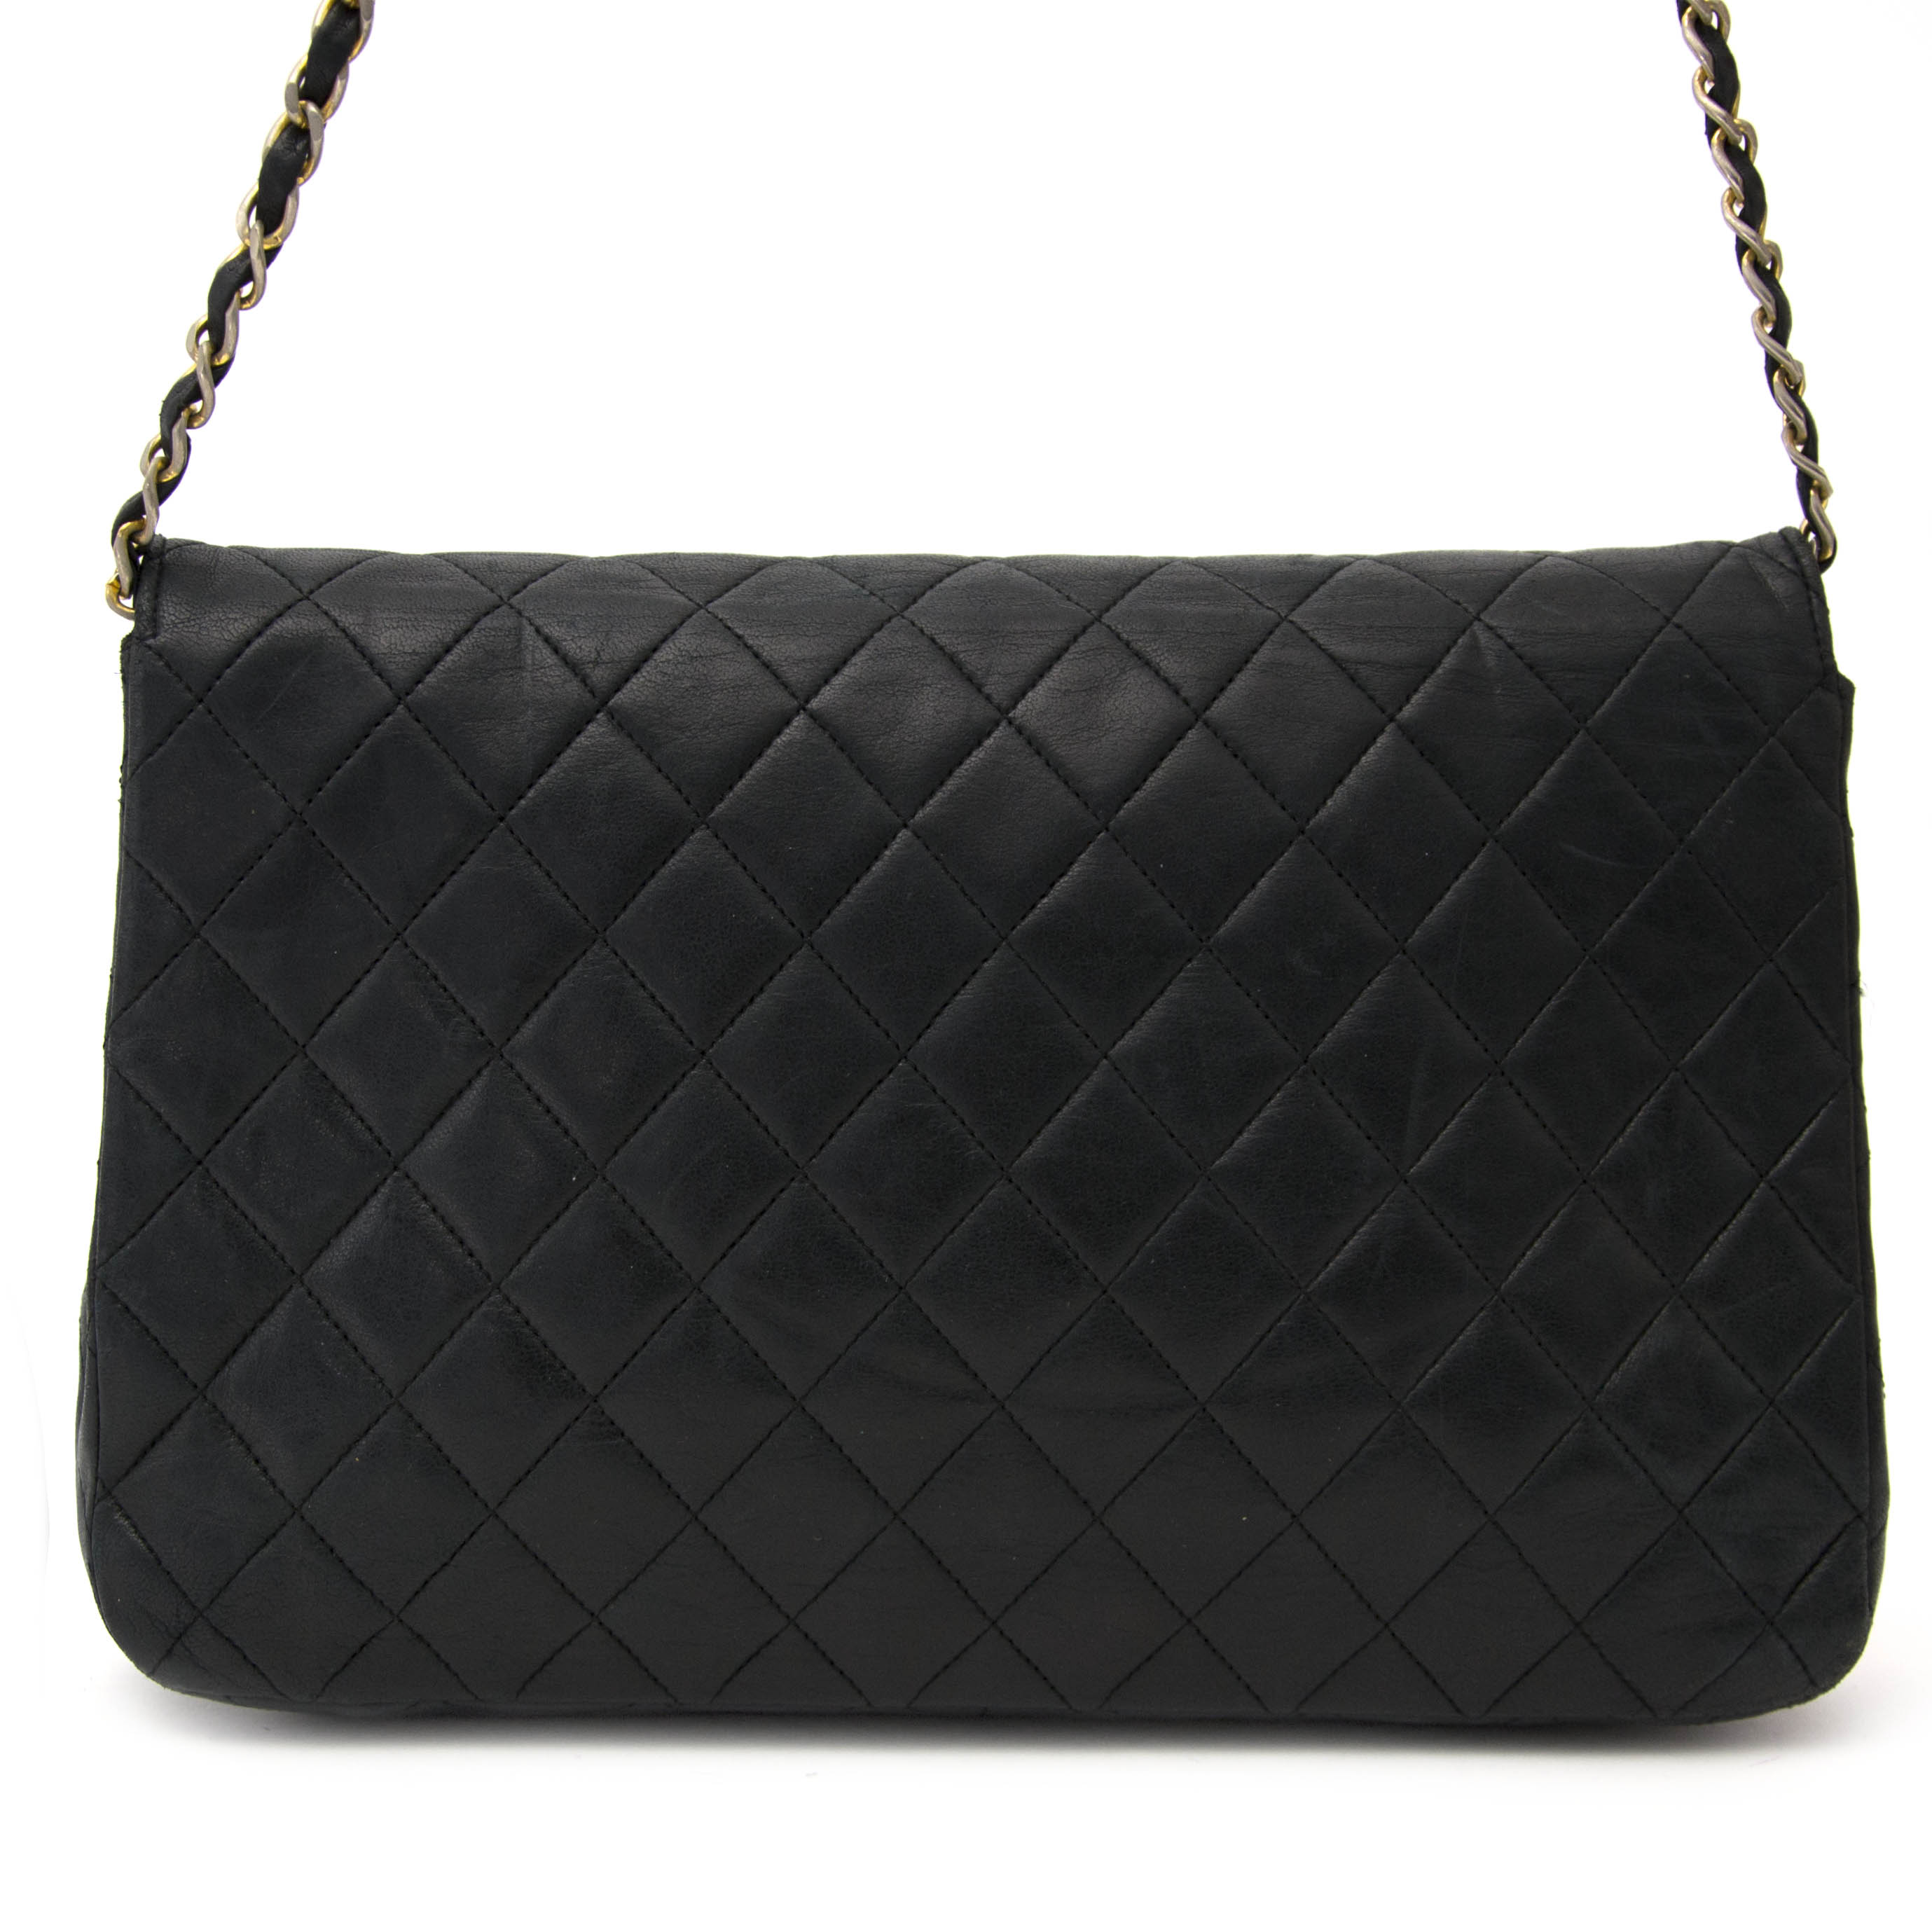 2f05c2fee3d2e3 ... Buy your authentic Chanel Vintage Black Quilted Shoulder Bag for the  best price